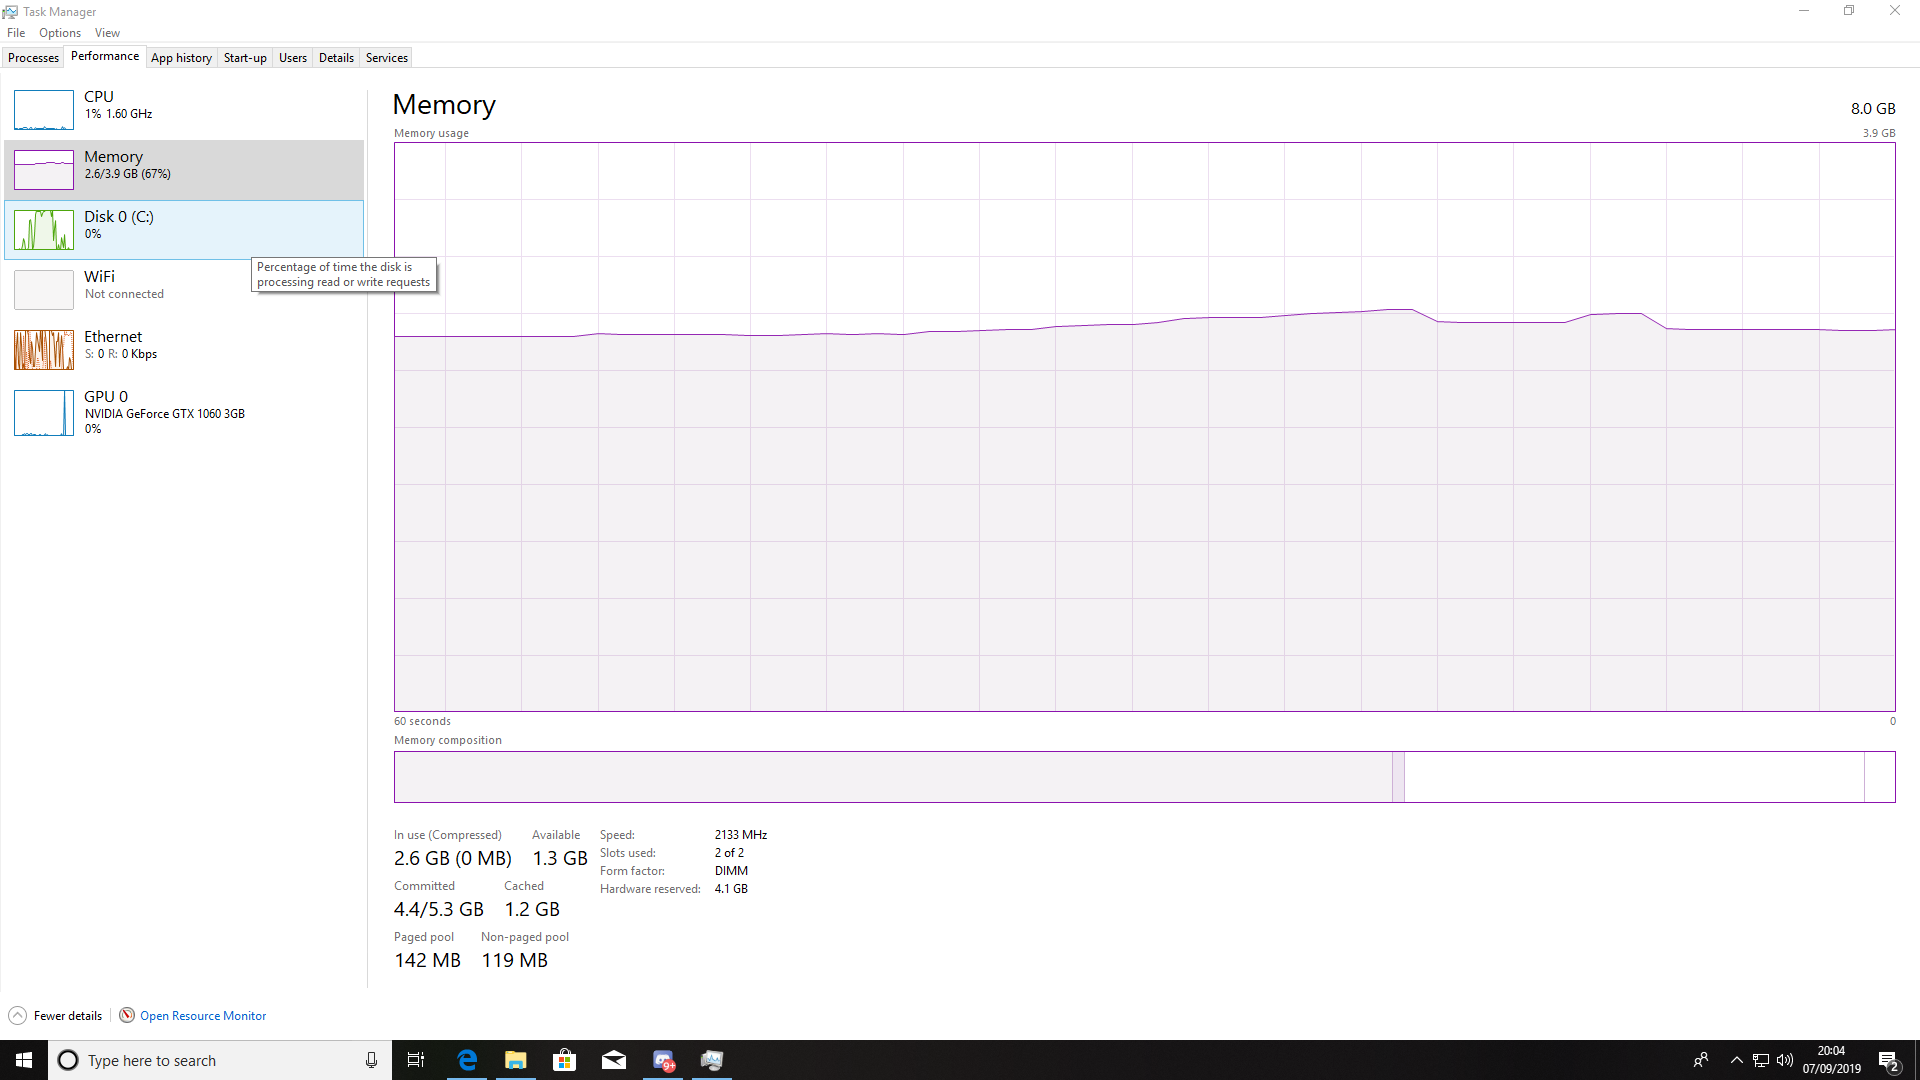 Ram and disk usage up to very high usage in windows 10 278ce68d-e0d9-4993-b5ed-9f7ffda8f319?upload=true.png